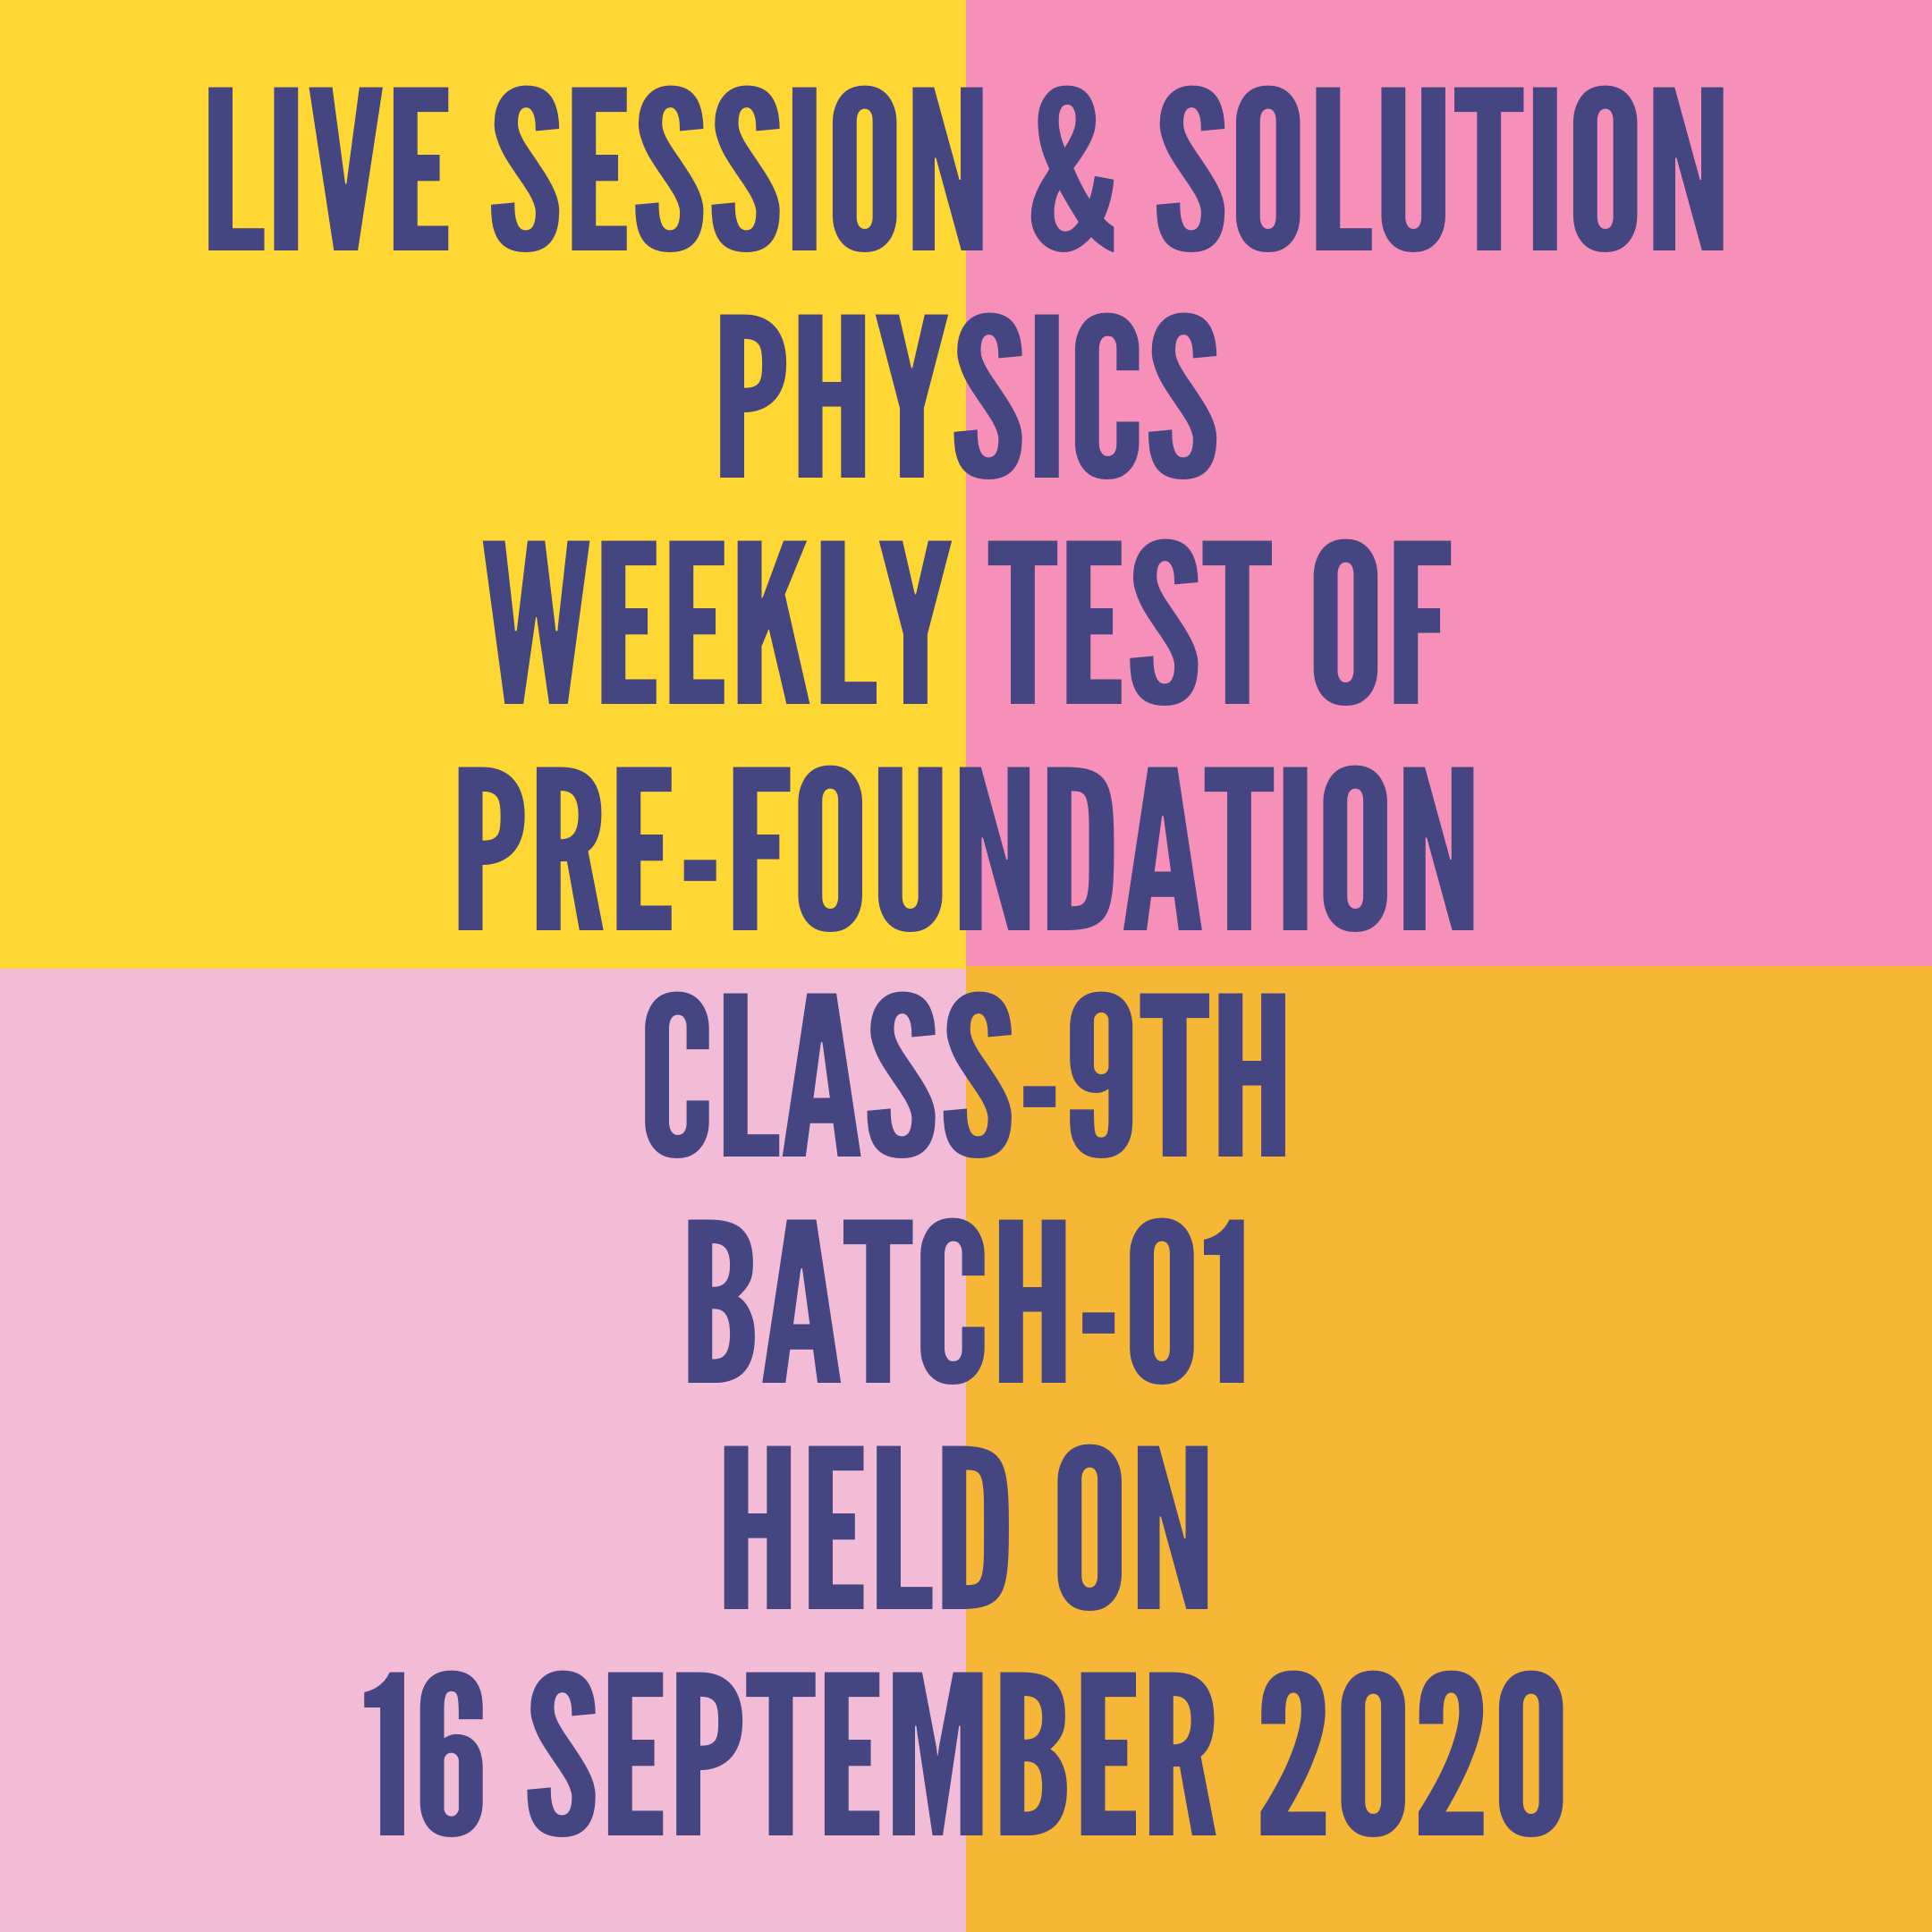 LIVE SESSION & SOLUTION PHYSICS WEEKLY TEST OF PRE-FOUNDATION CLASS-9TH BATCH-01  HELD ON 16 SEPTEMBER 2020